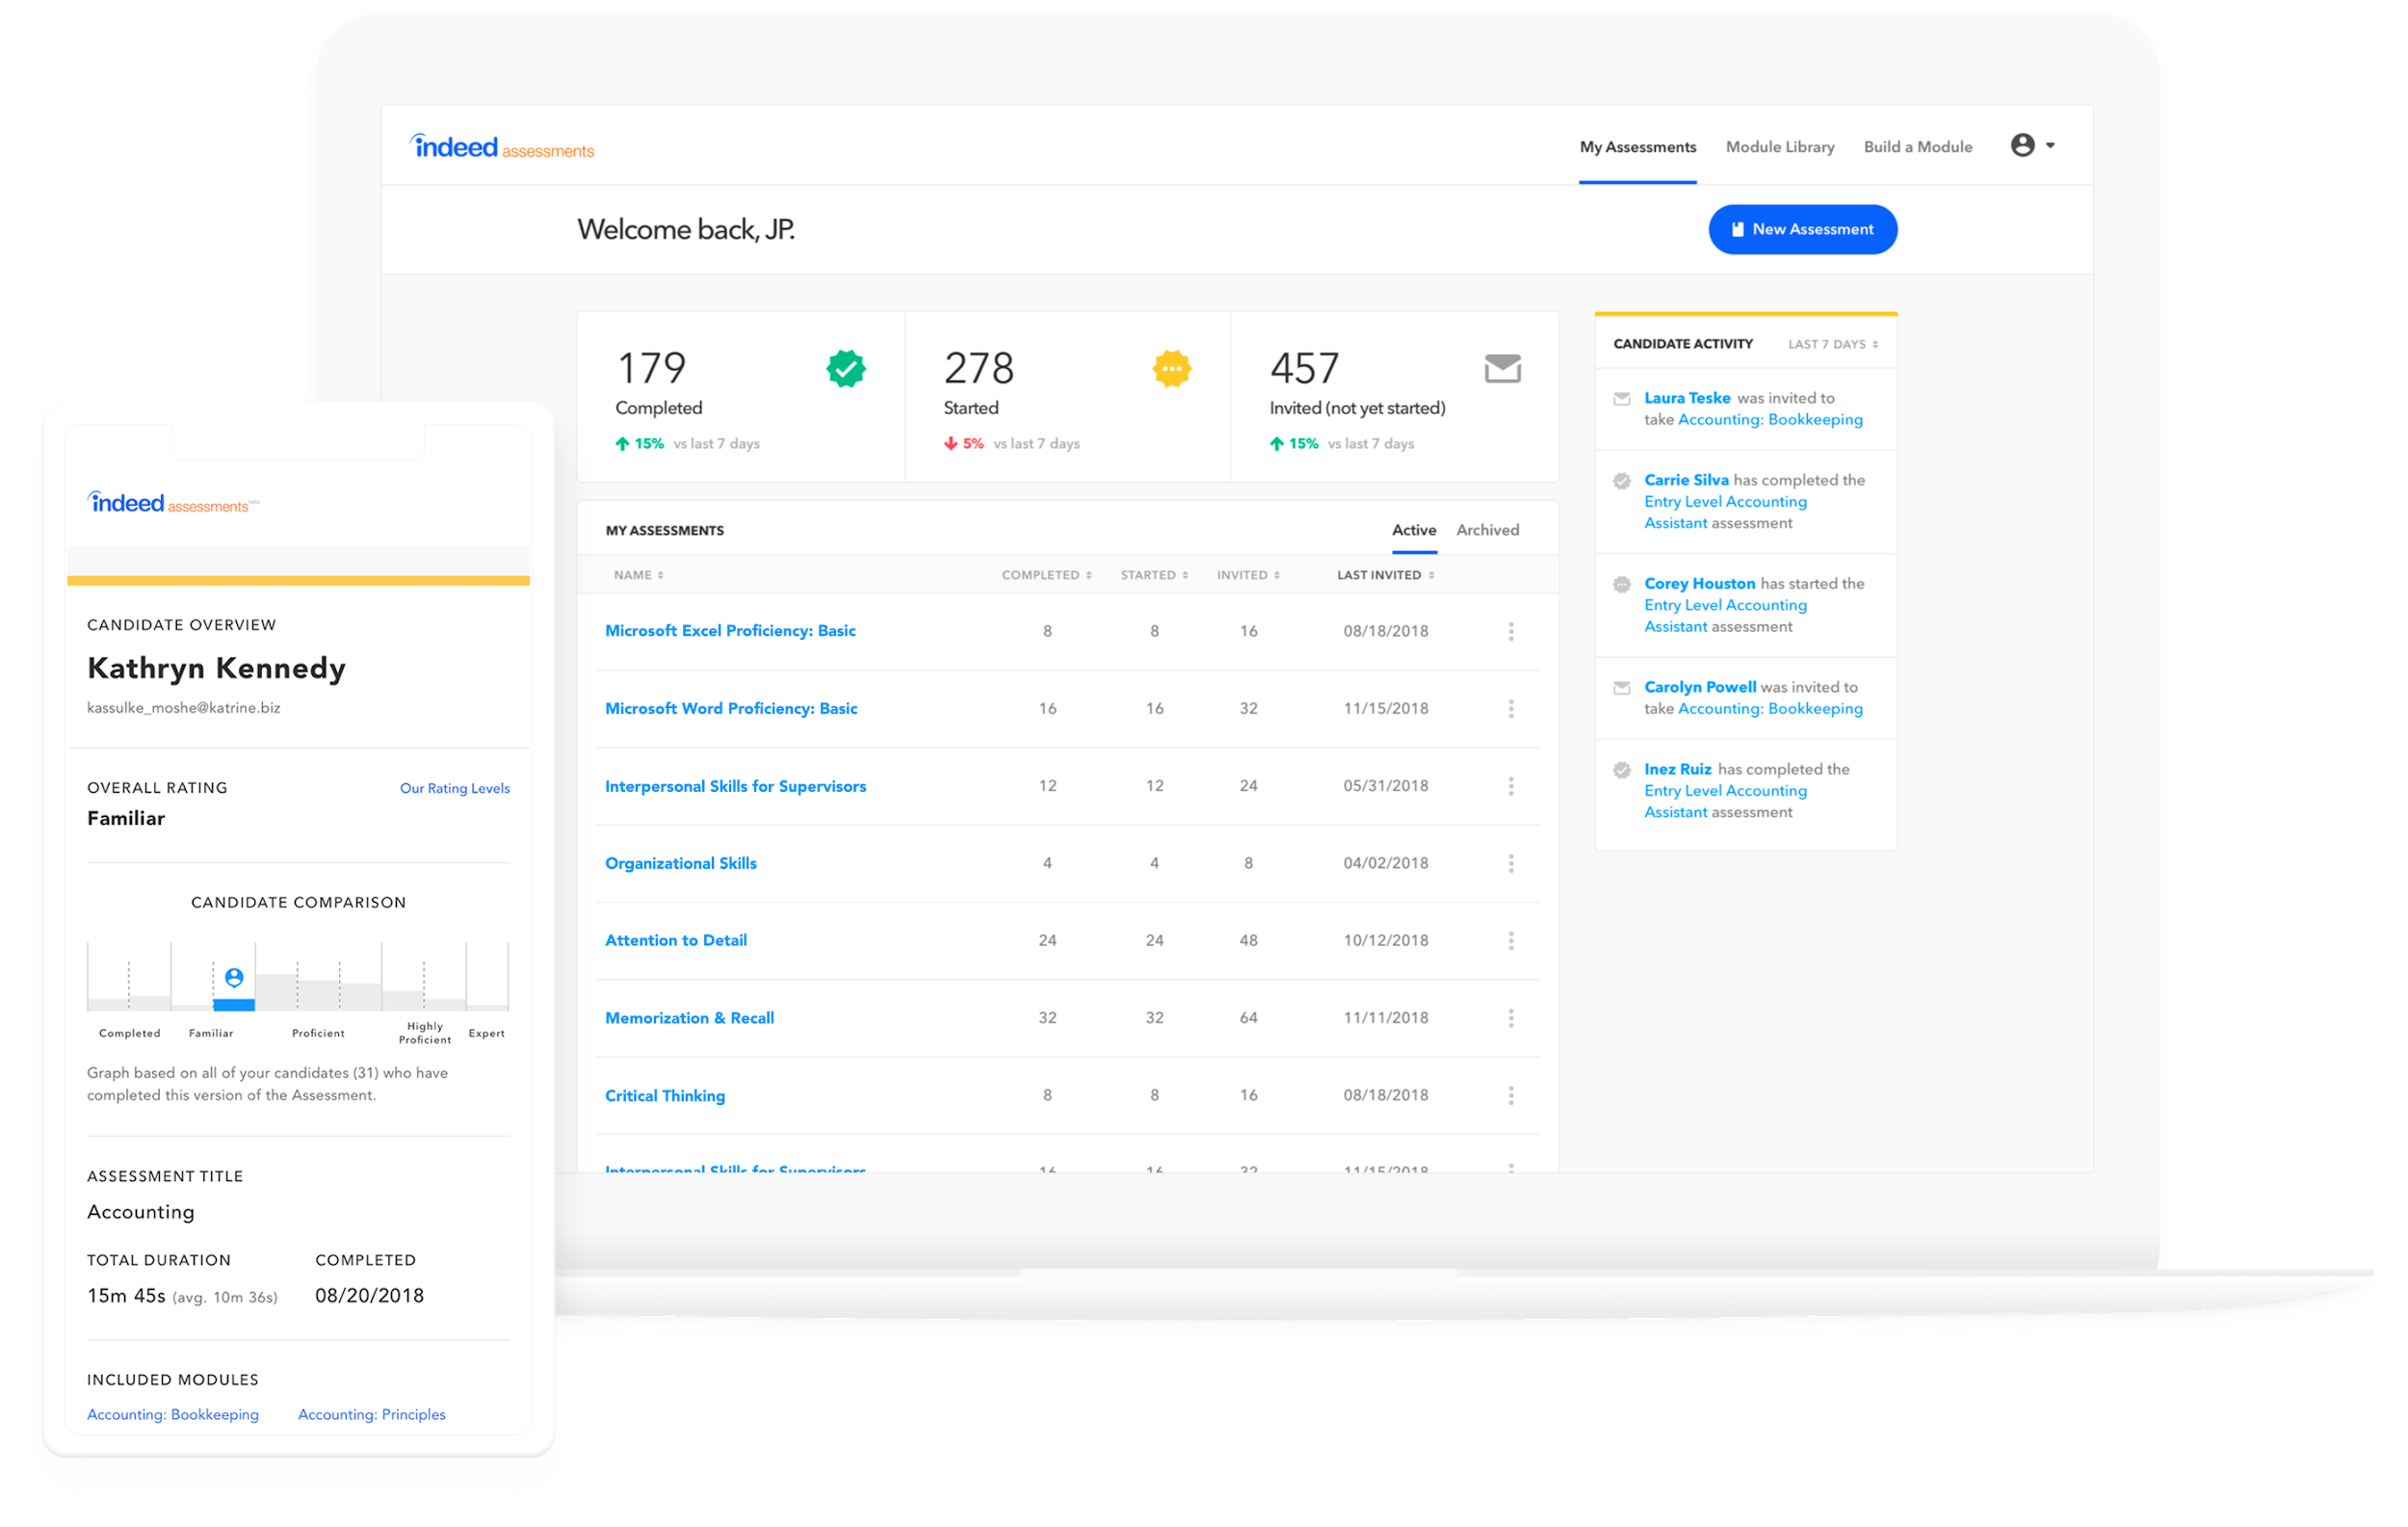 indeed's applicant tracking system page